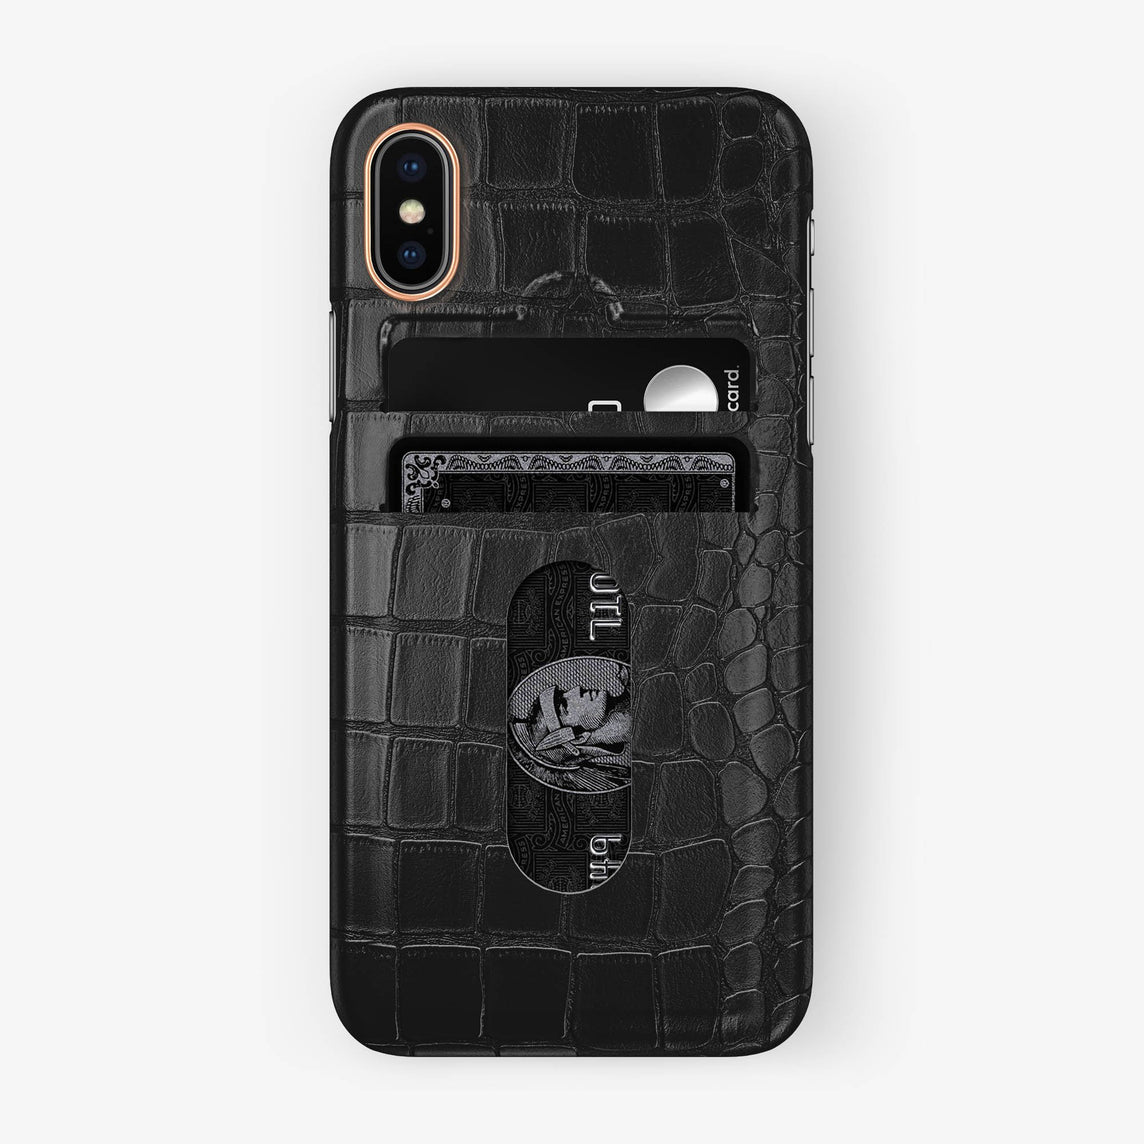 Alligator Card Holder Case iPhone X/Xs | Black - Rose Gold - Hadoro